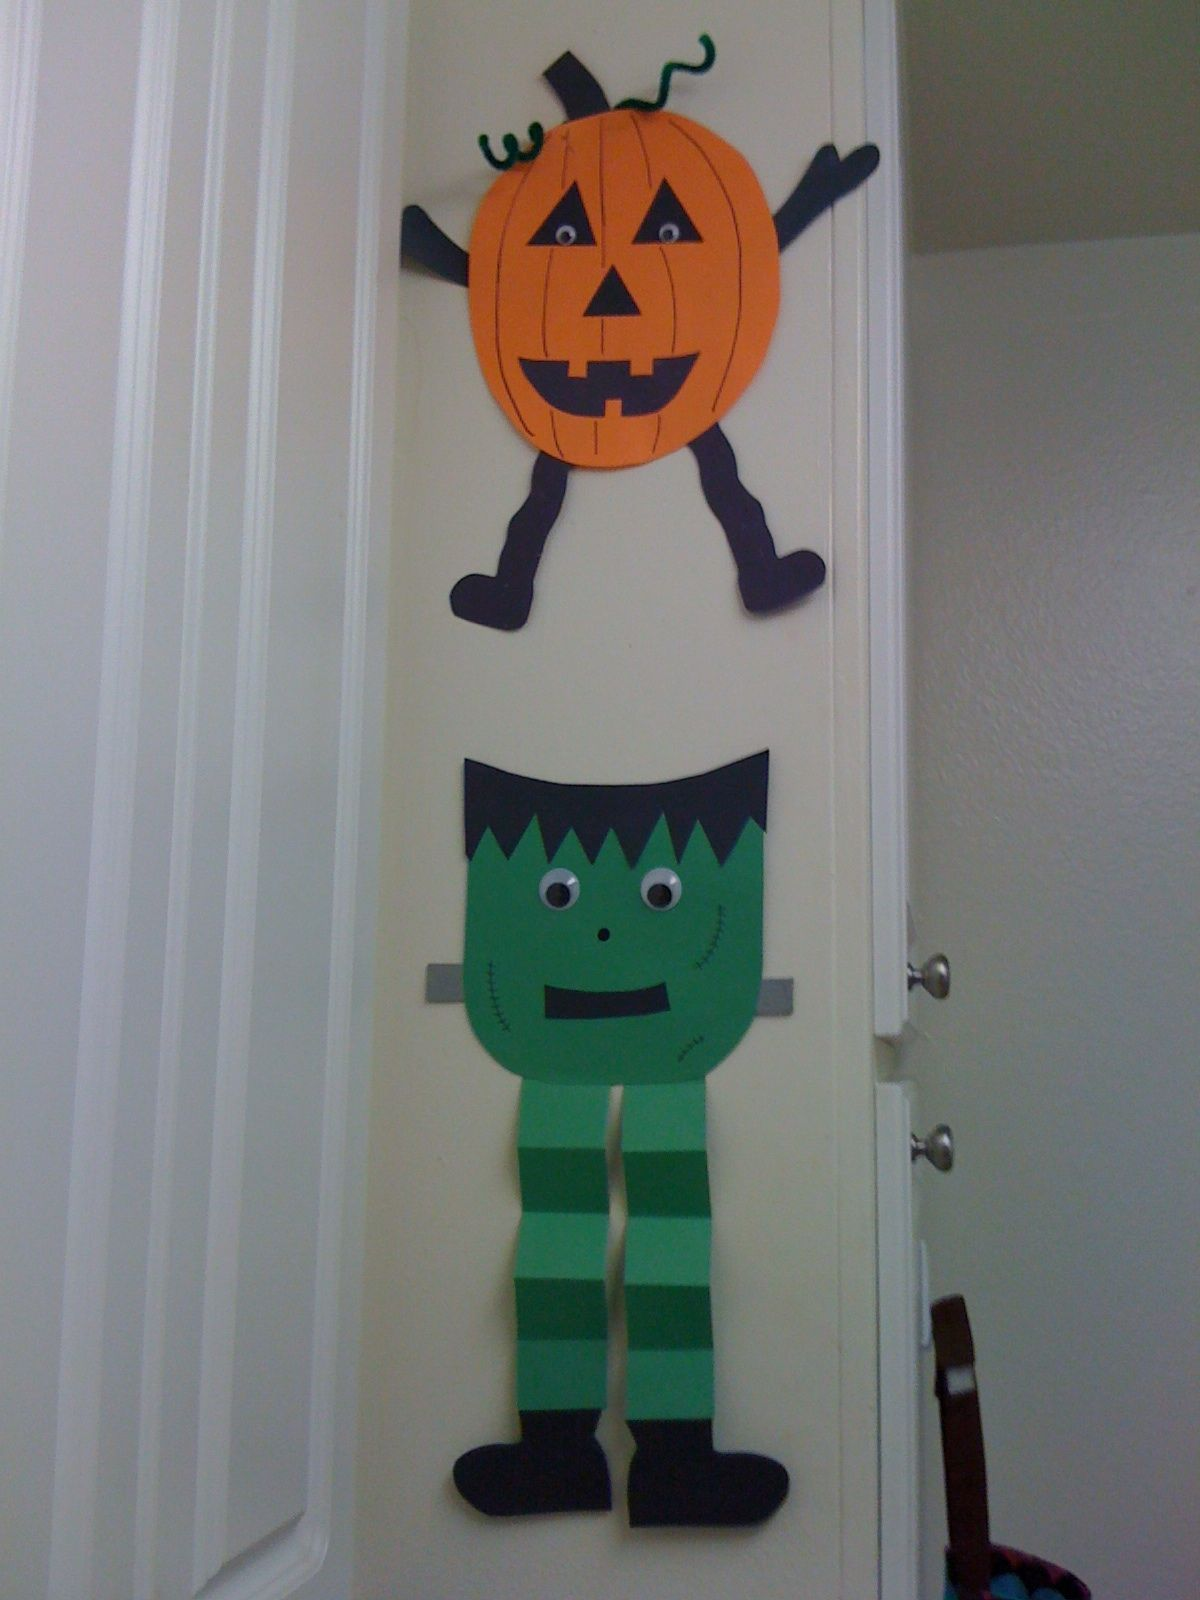 Construction Paper Glue Stick Pipe Cleaners Google Eyes And Sharpie Precious Halloween Crafts For PreschoolersHalloween